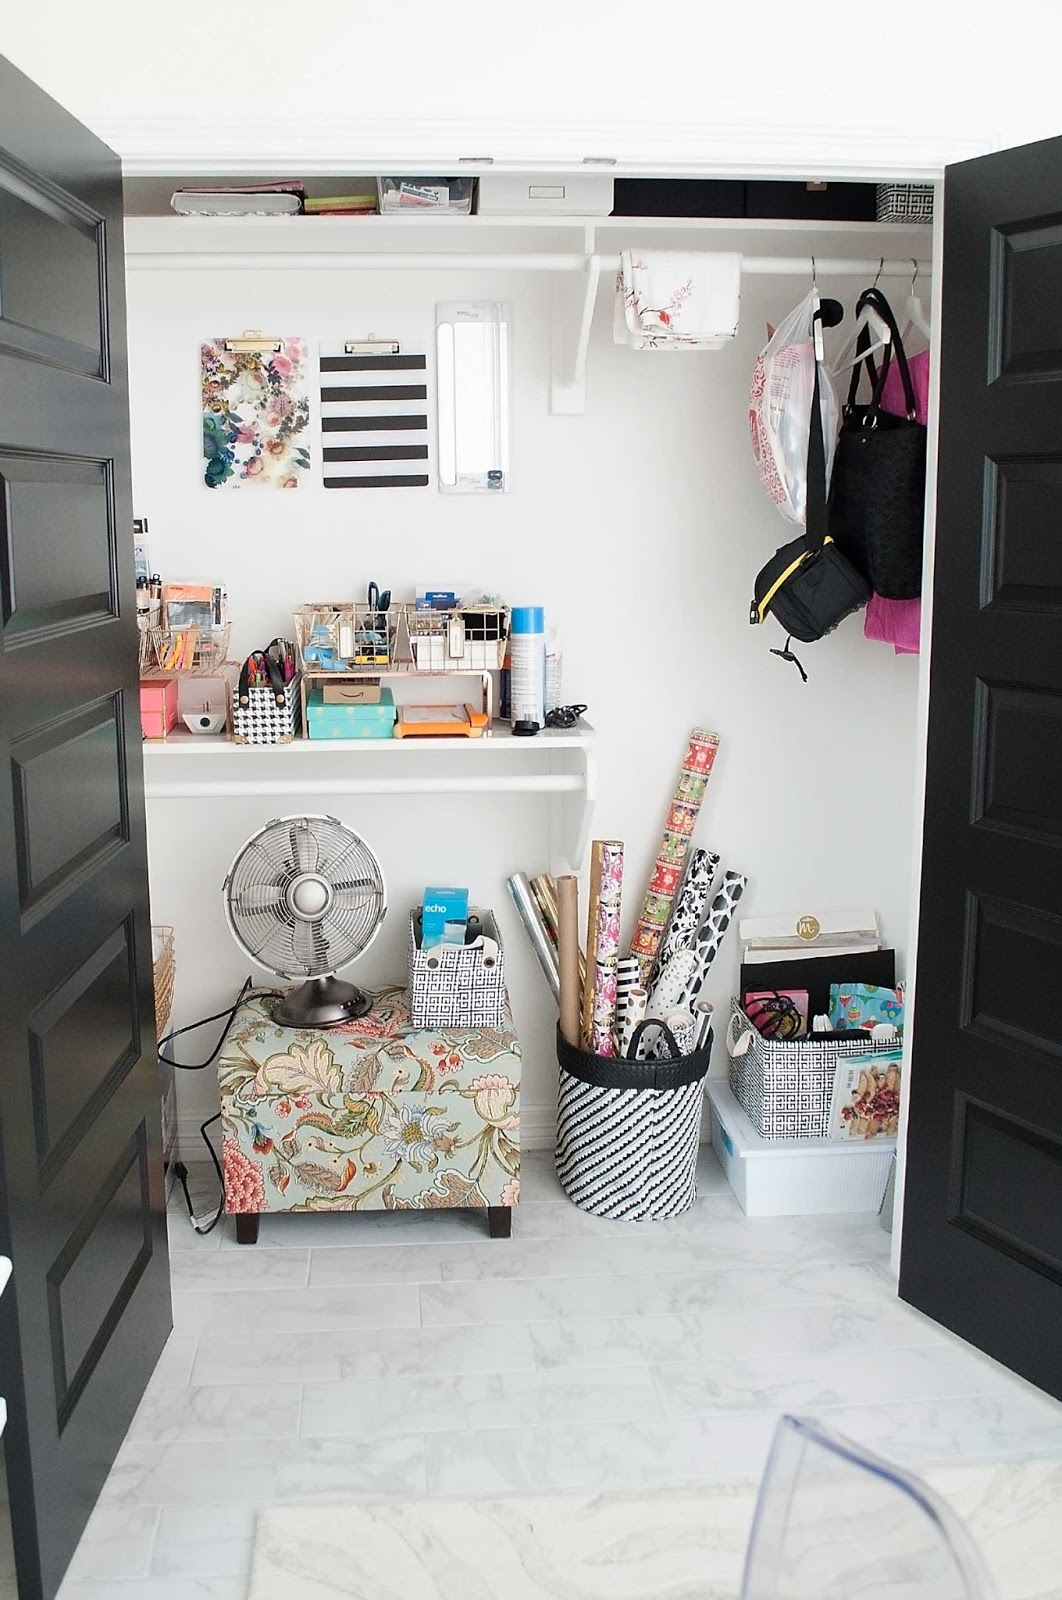 Home office closet organized with baskets and various storage boxes.